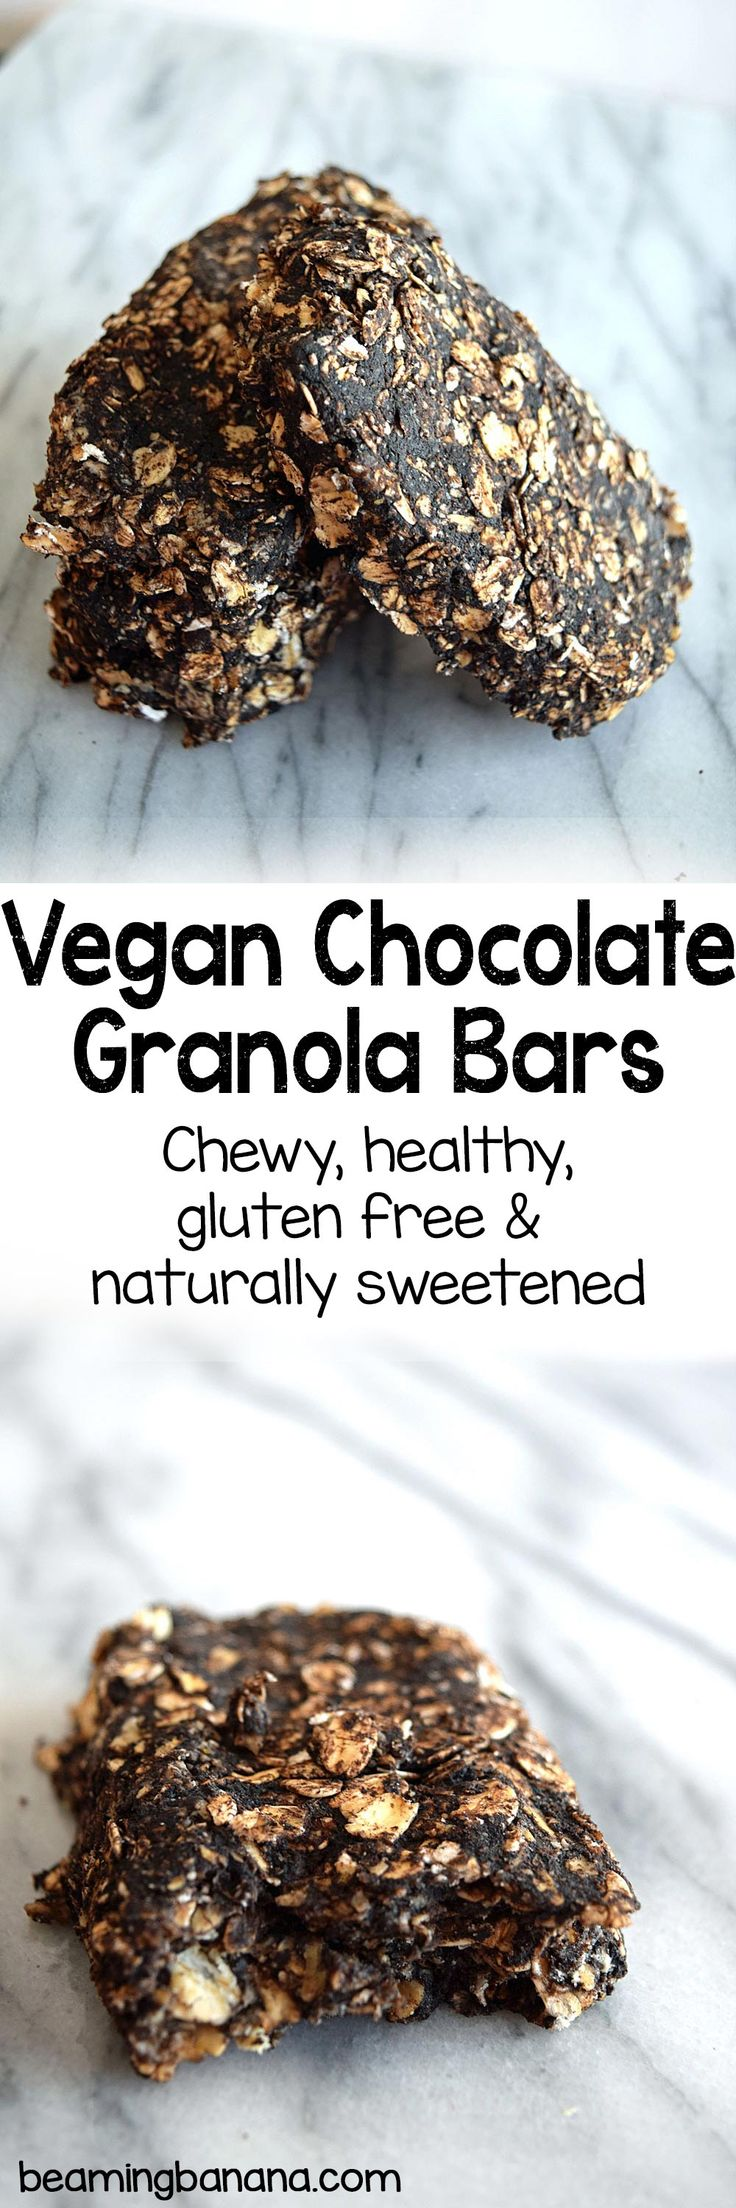 Vegan chocolate granola bars are chewy, super chocolatey and perfect for a sweet snack or dessert! Gluten free and sweetened naturally.   beamingbanana.com